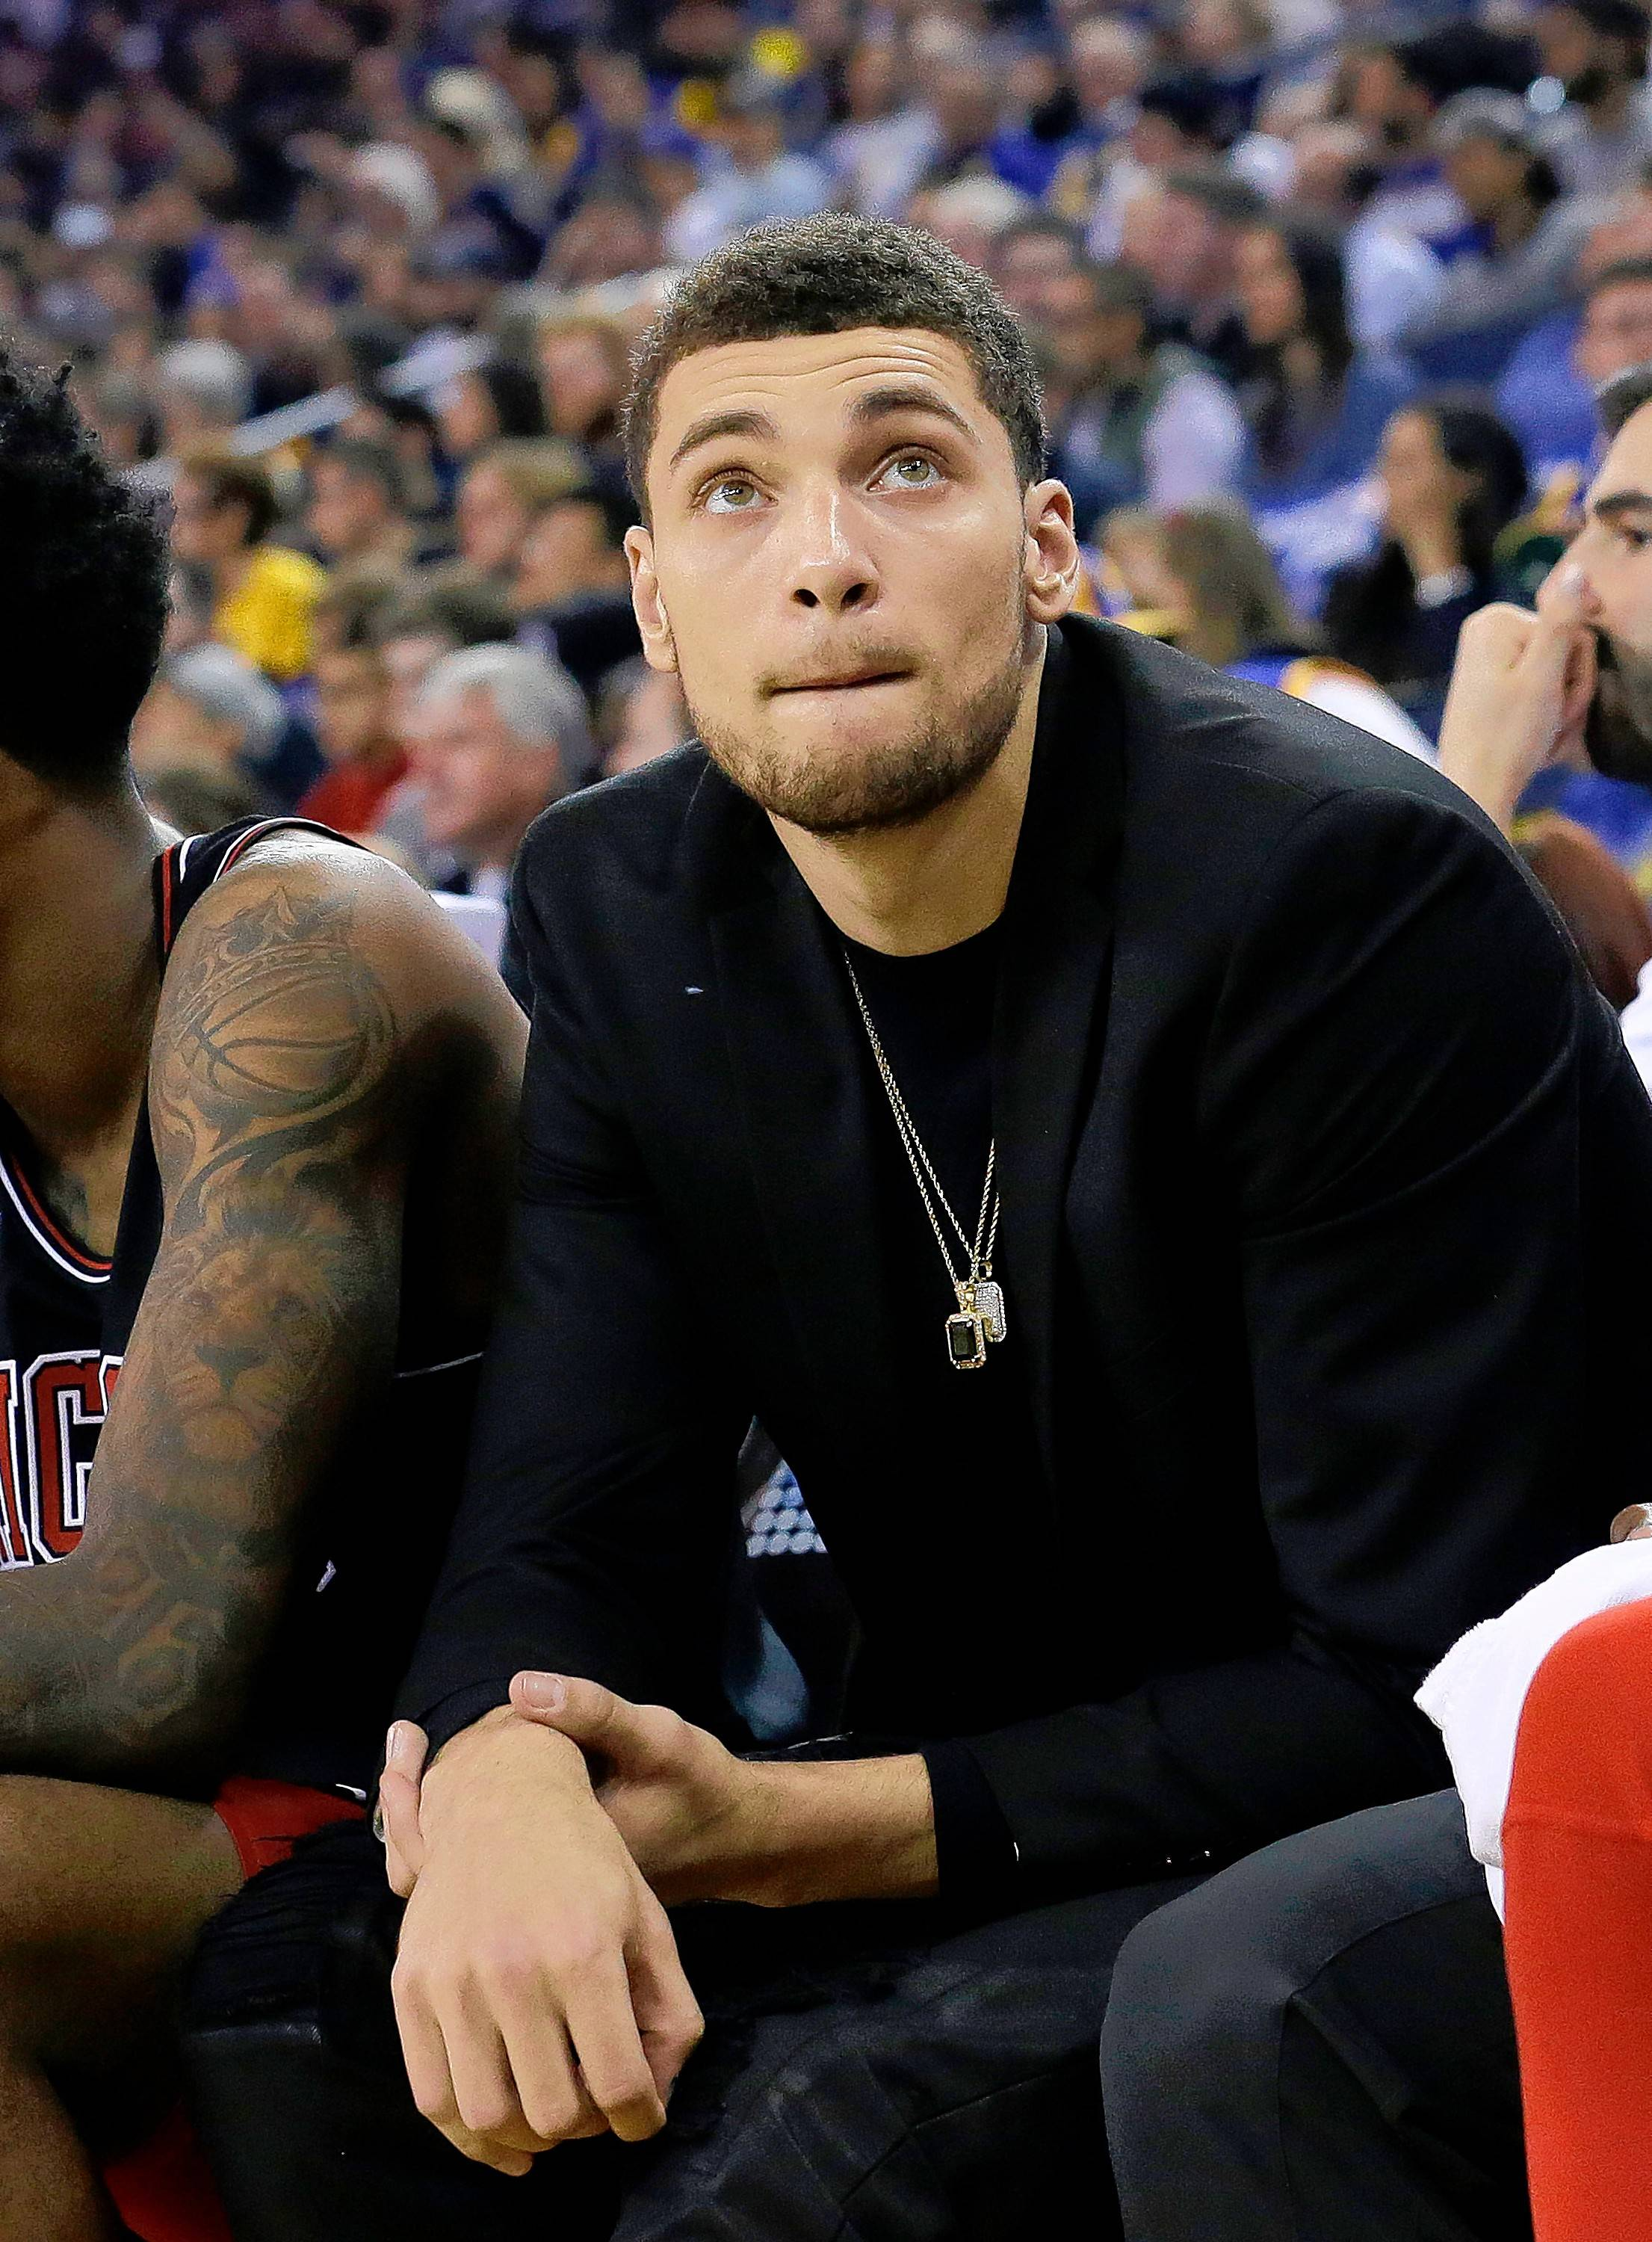 Chicago Bulls guard Zach LaVine could be just a couple of weeks away from returning from knee surgery. But the Bulls have been in a rhythm lately. So how will LaVine fit into that picture?